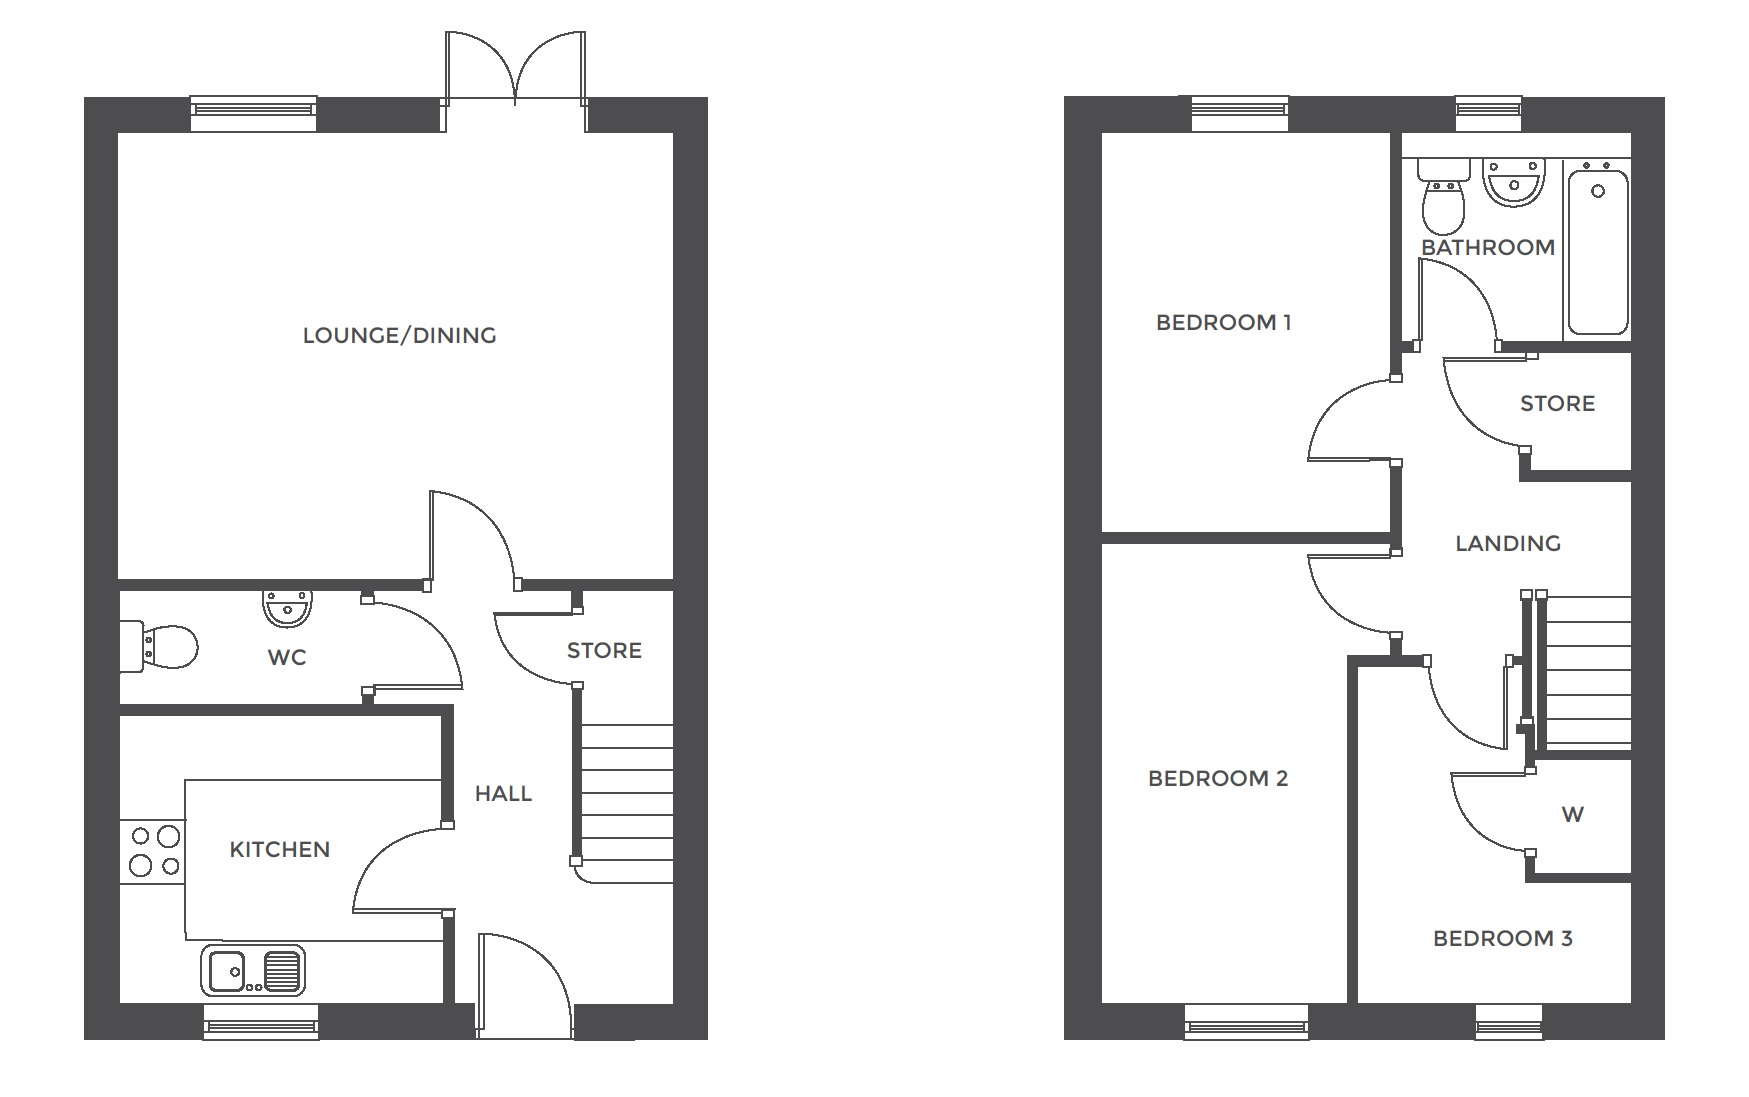 Repington Walk, Plot 16 floor plan